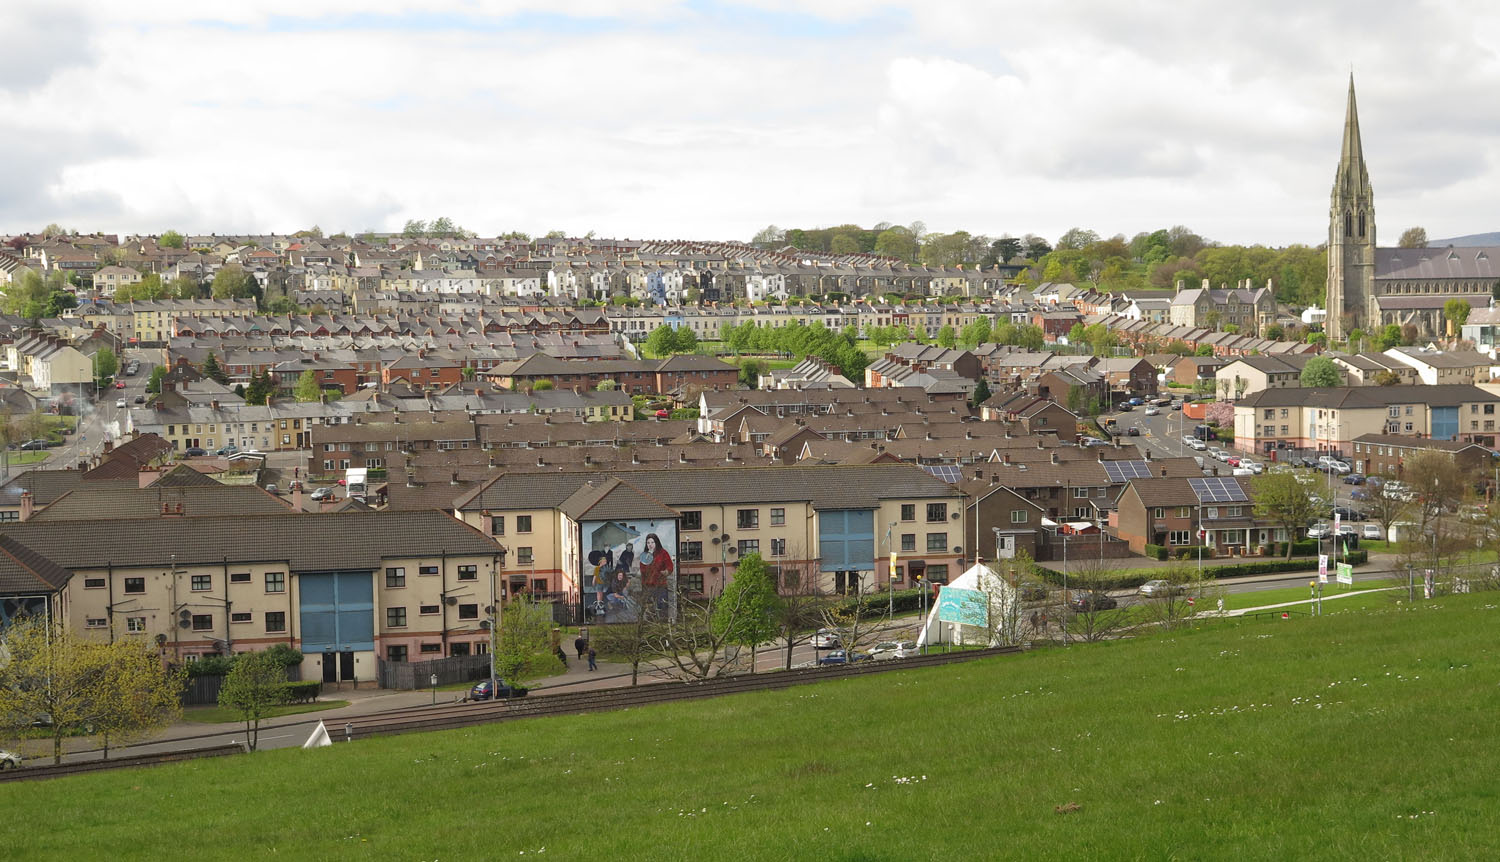 Northern-Ireland-Derry-Londonderry-Bogside-Skyline